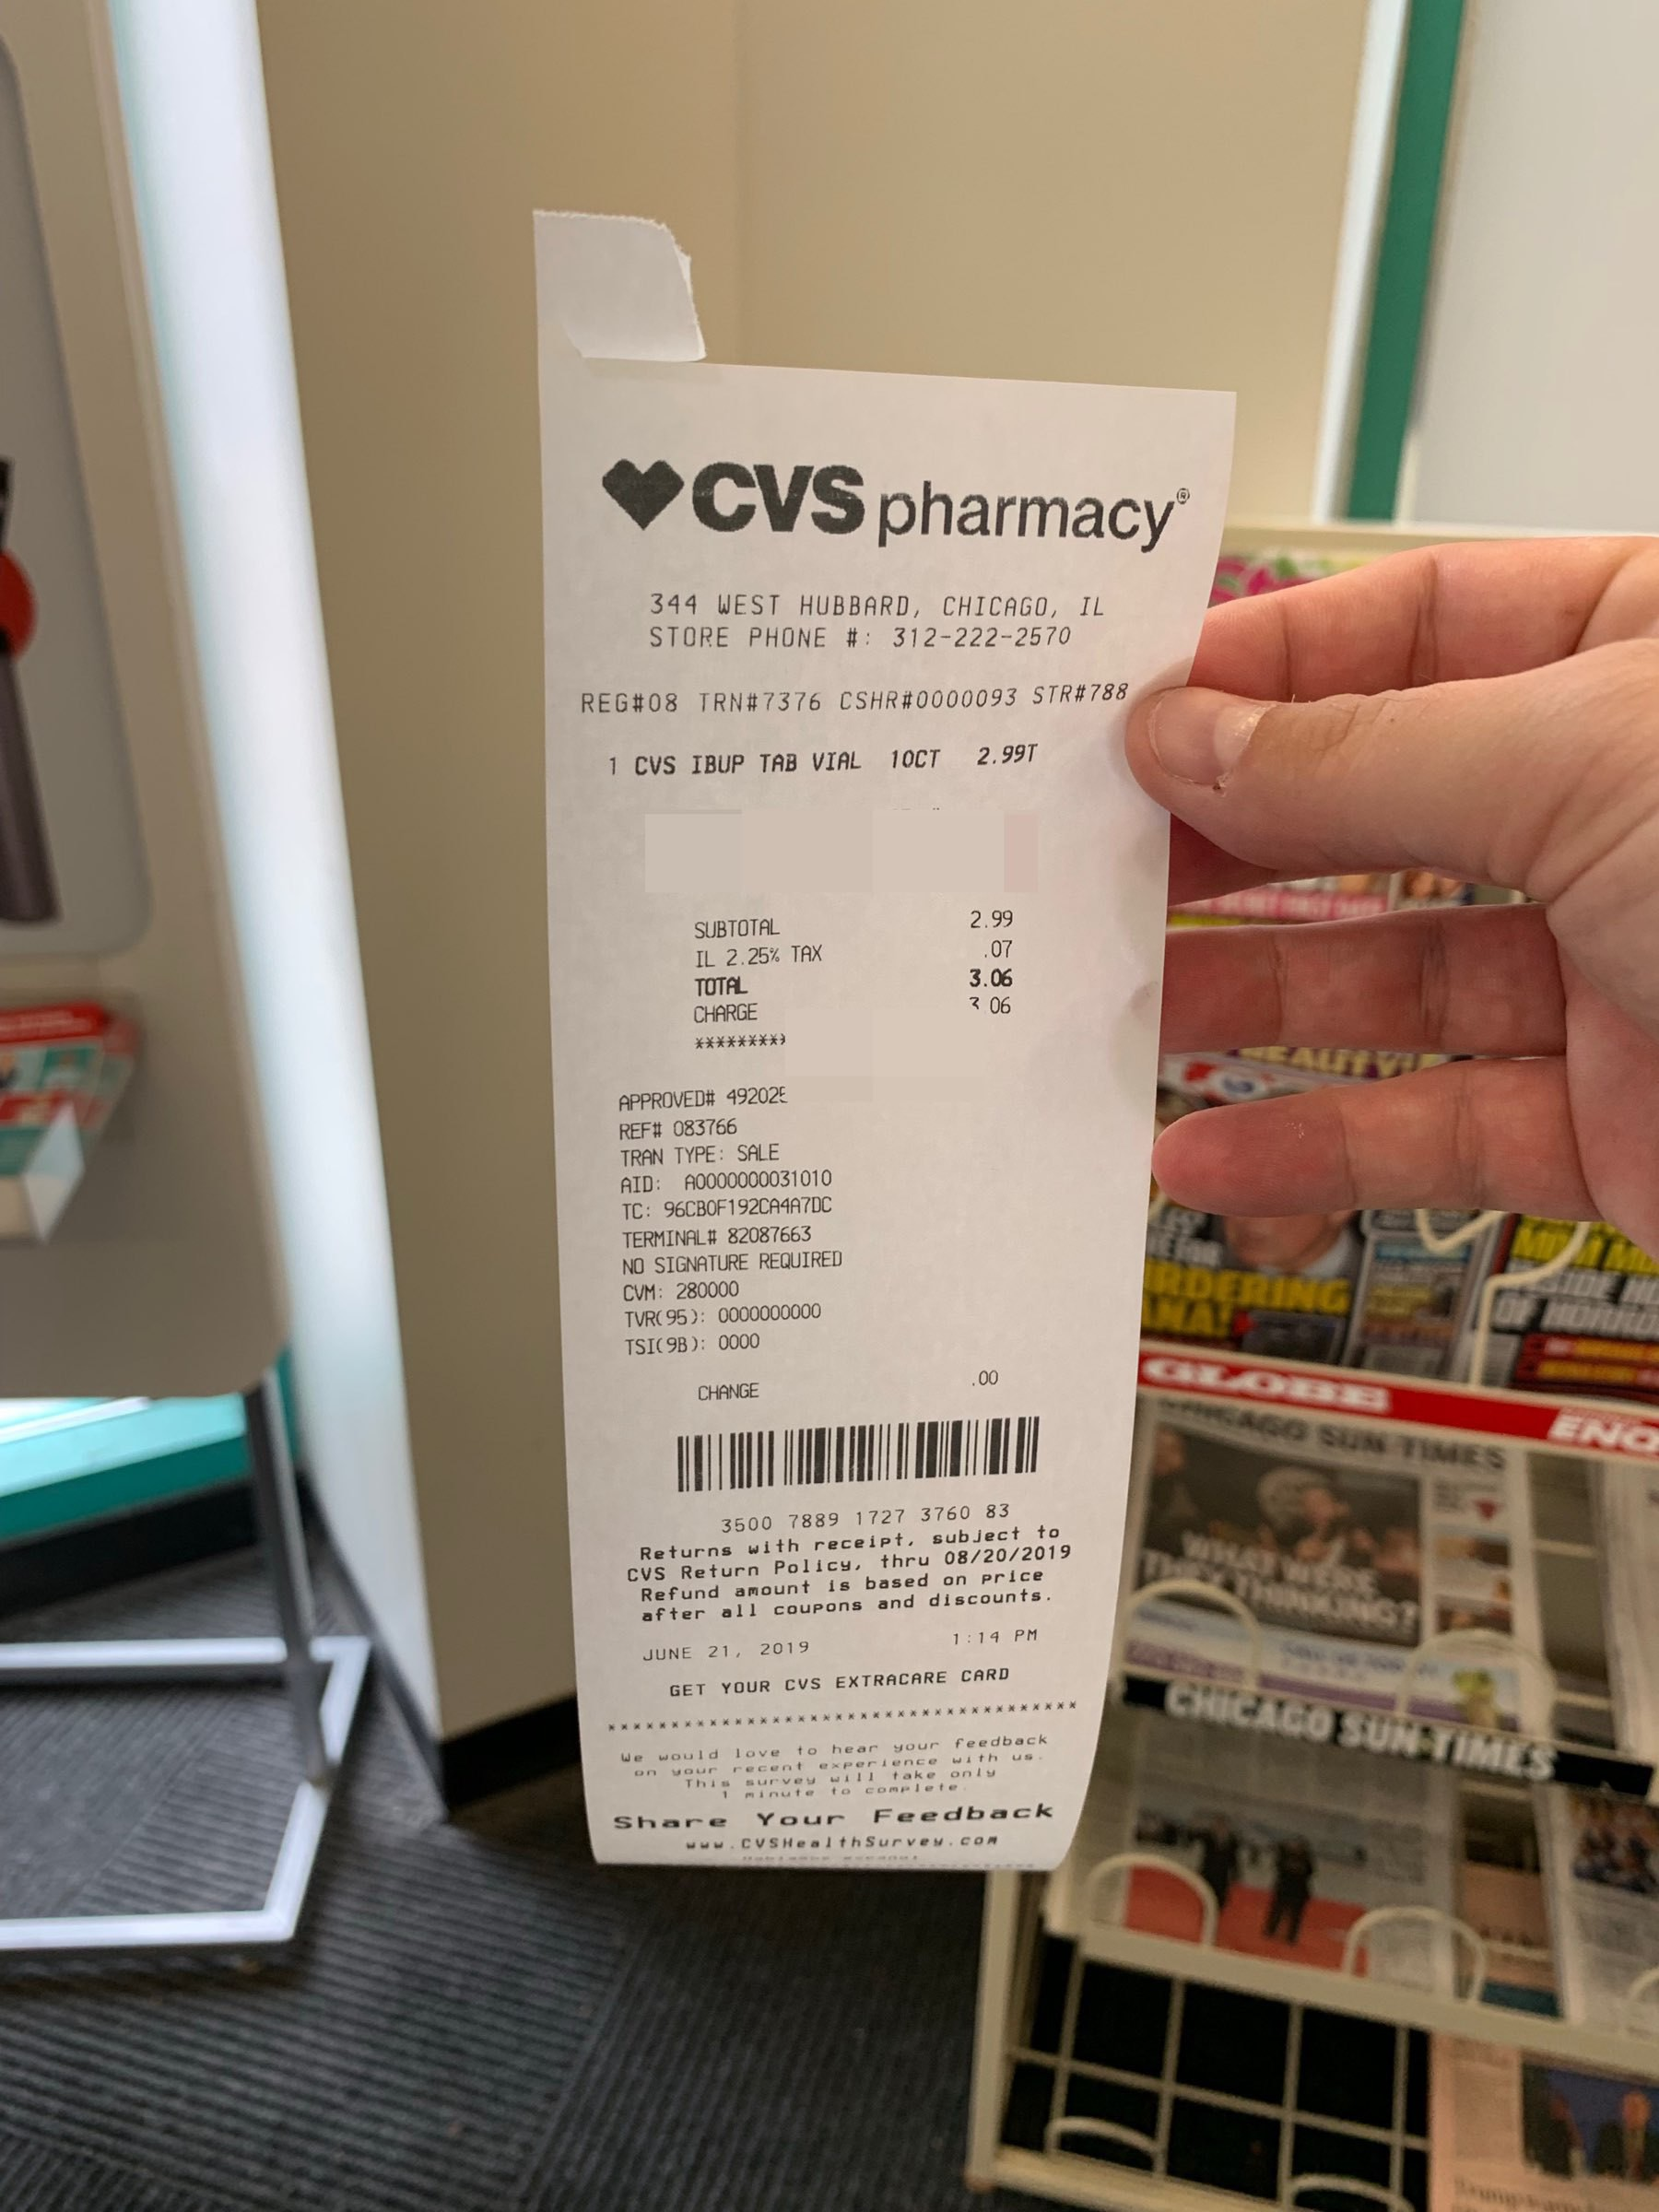 A photo of the CVS receipt that is surprisingly short